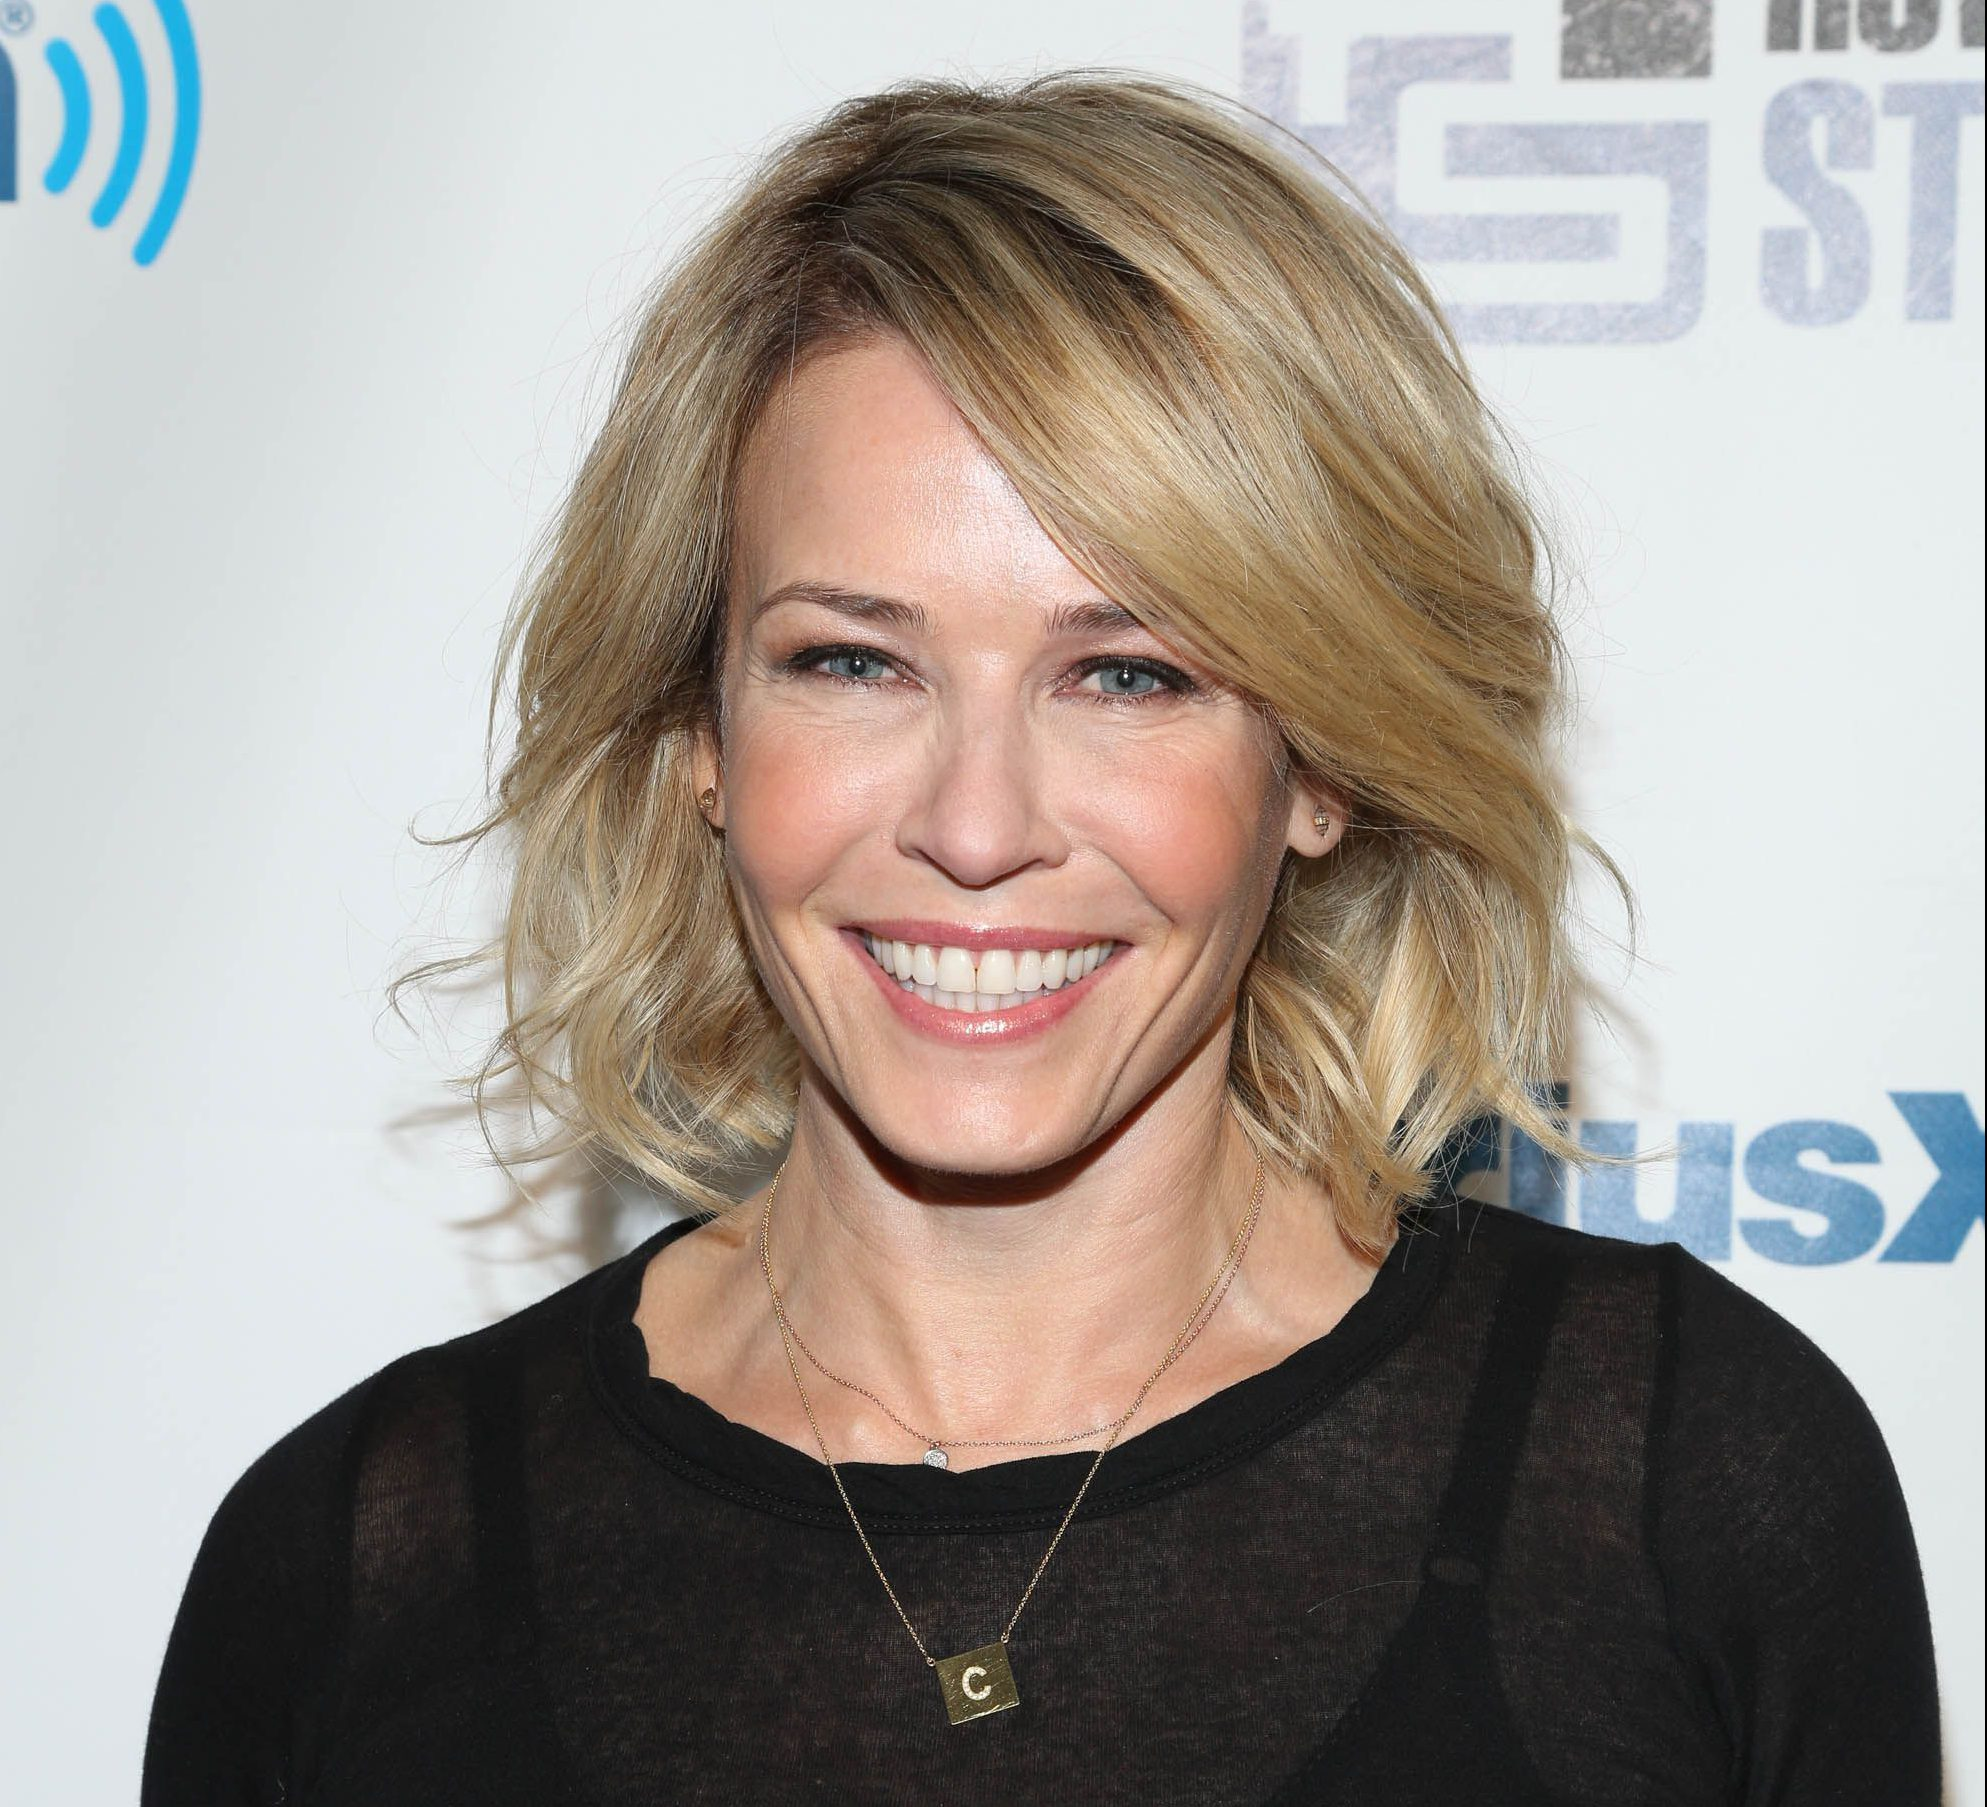 Chelsea Handler opens up on having two abortions at 16